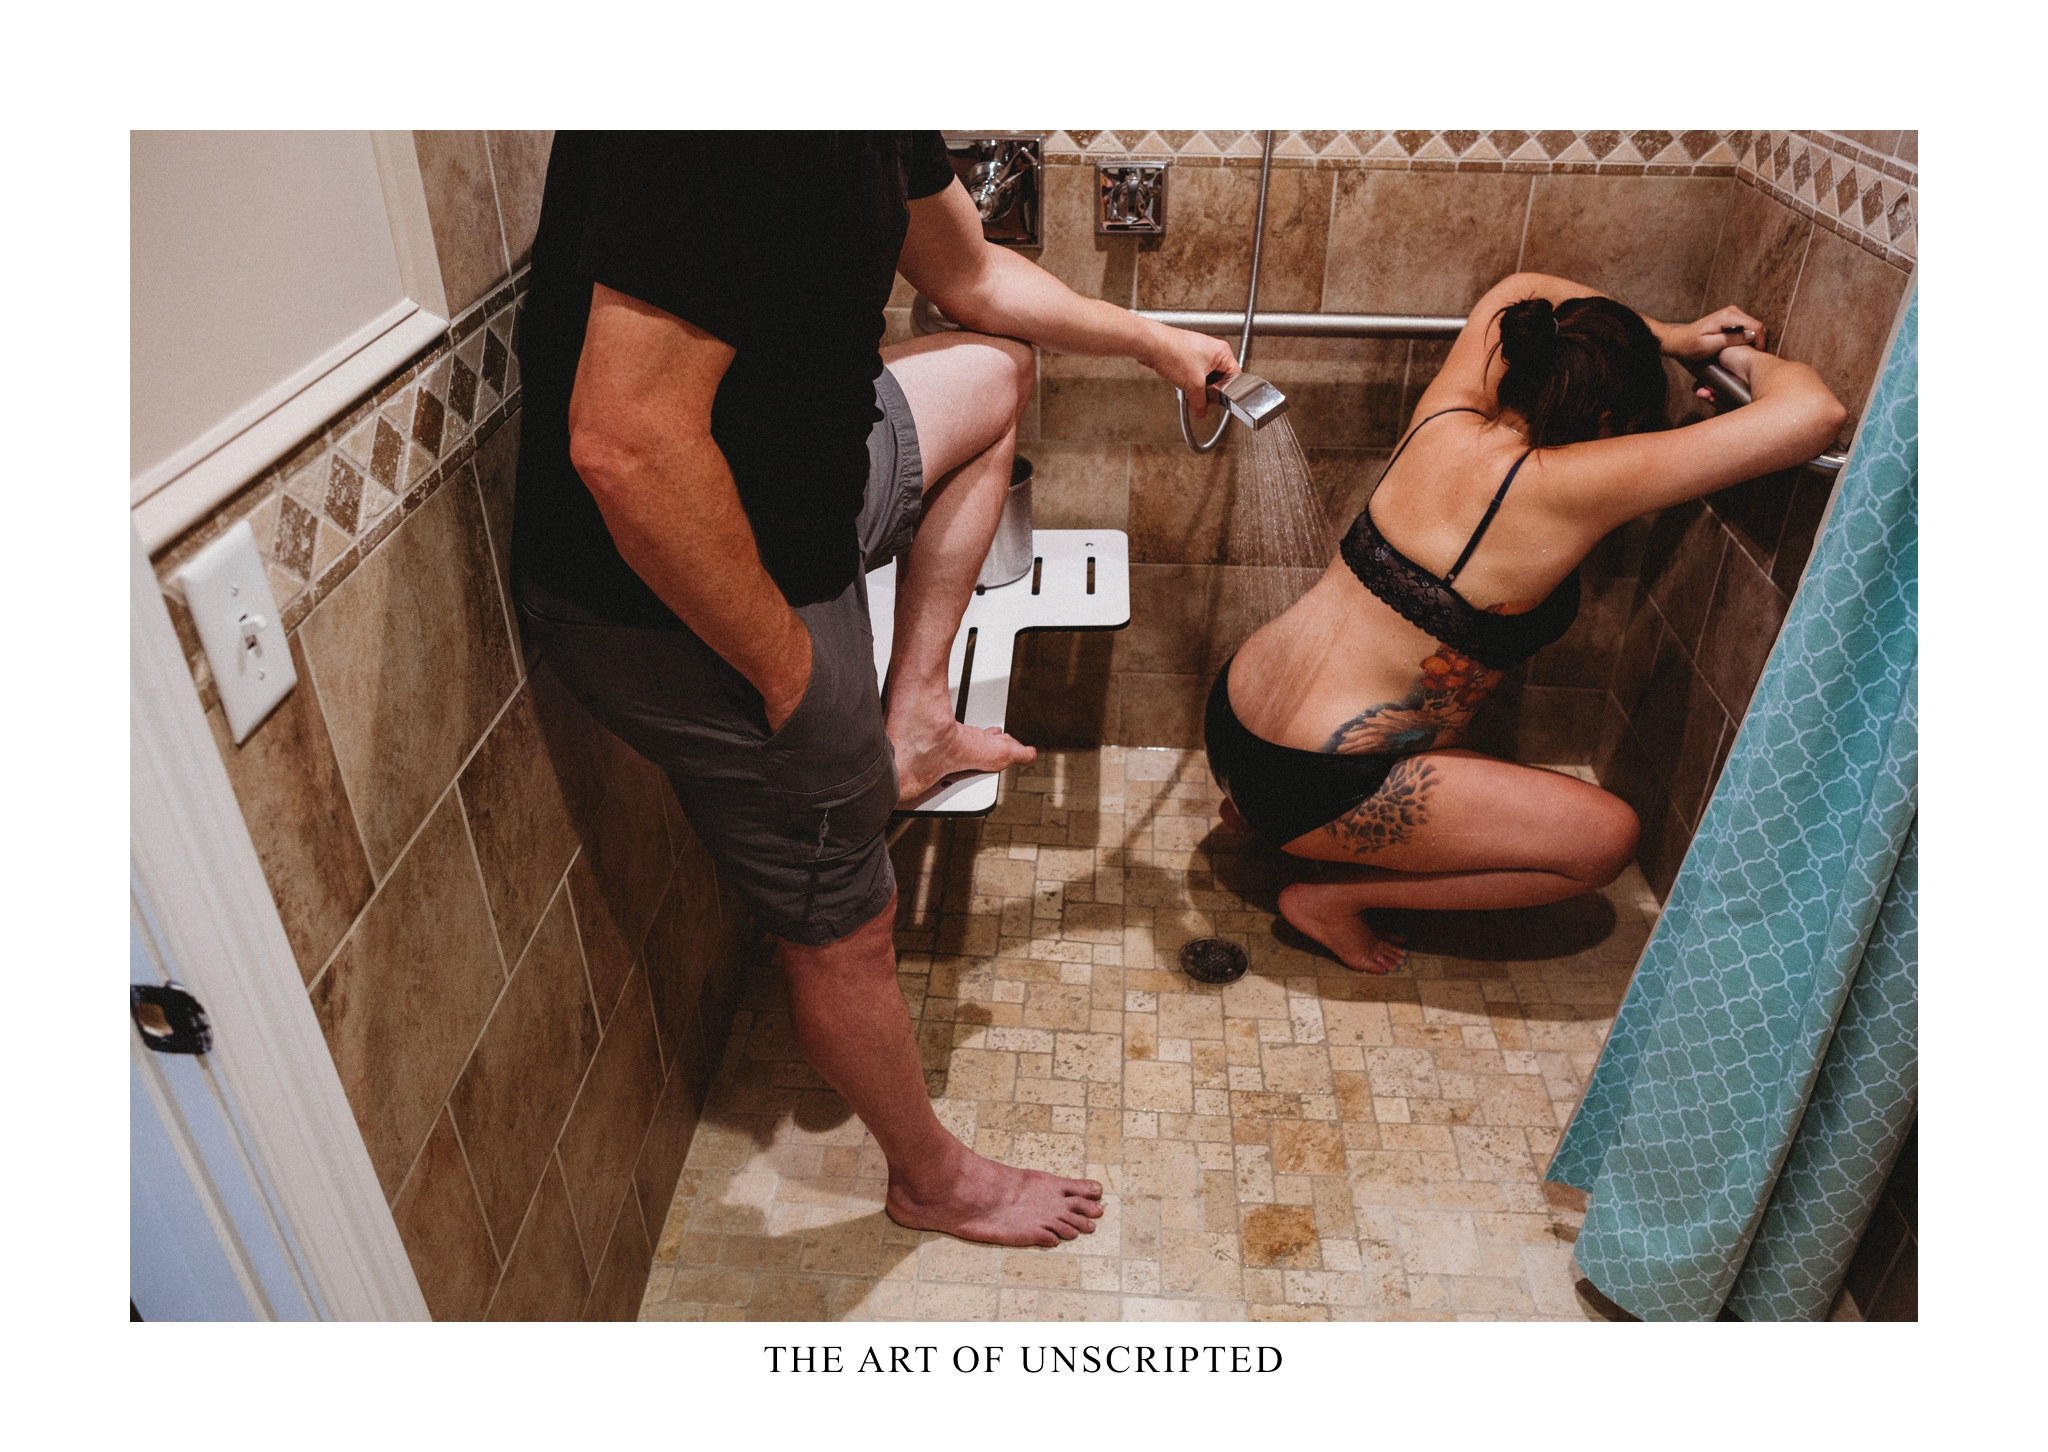 2017-06-10_090239__THE ART OF UNSCRIPTED_SPRINGFIELD MO_BIRTH PHOTOGRAPHER_ DOCUMENTARY_STORYTELLING_417_PHOTOGRAPHER